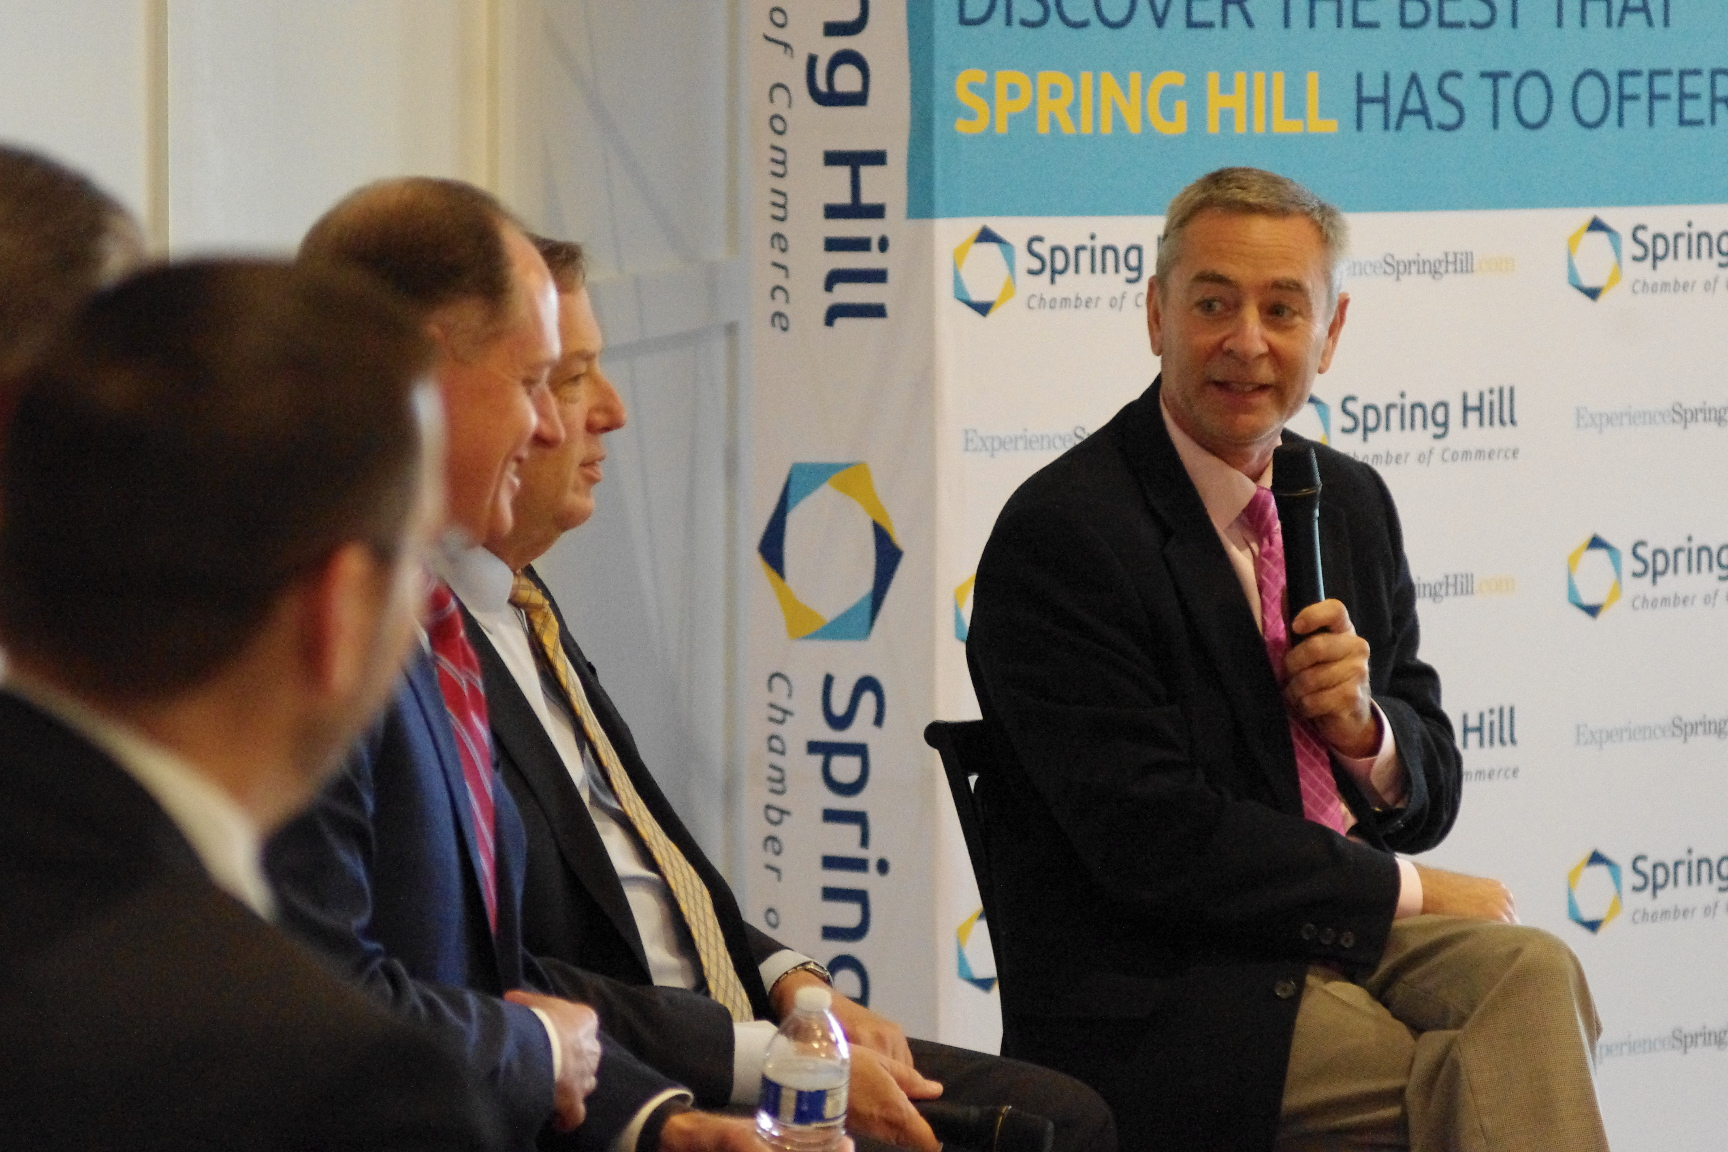 Glen Casada, Sam Whitson and other state leaders praise Spring Hill leadership for infrastructure progress